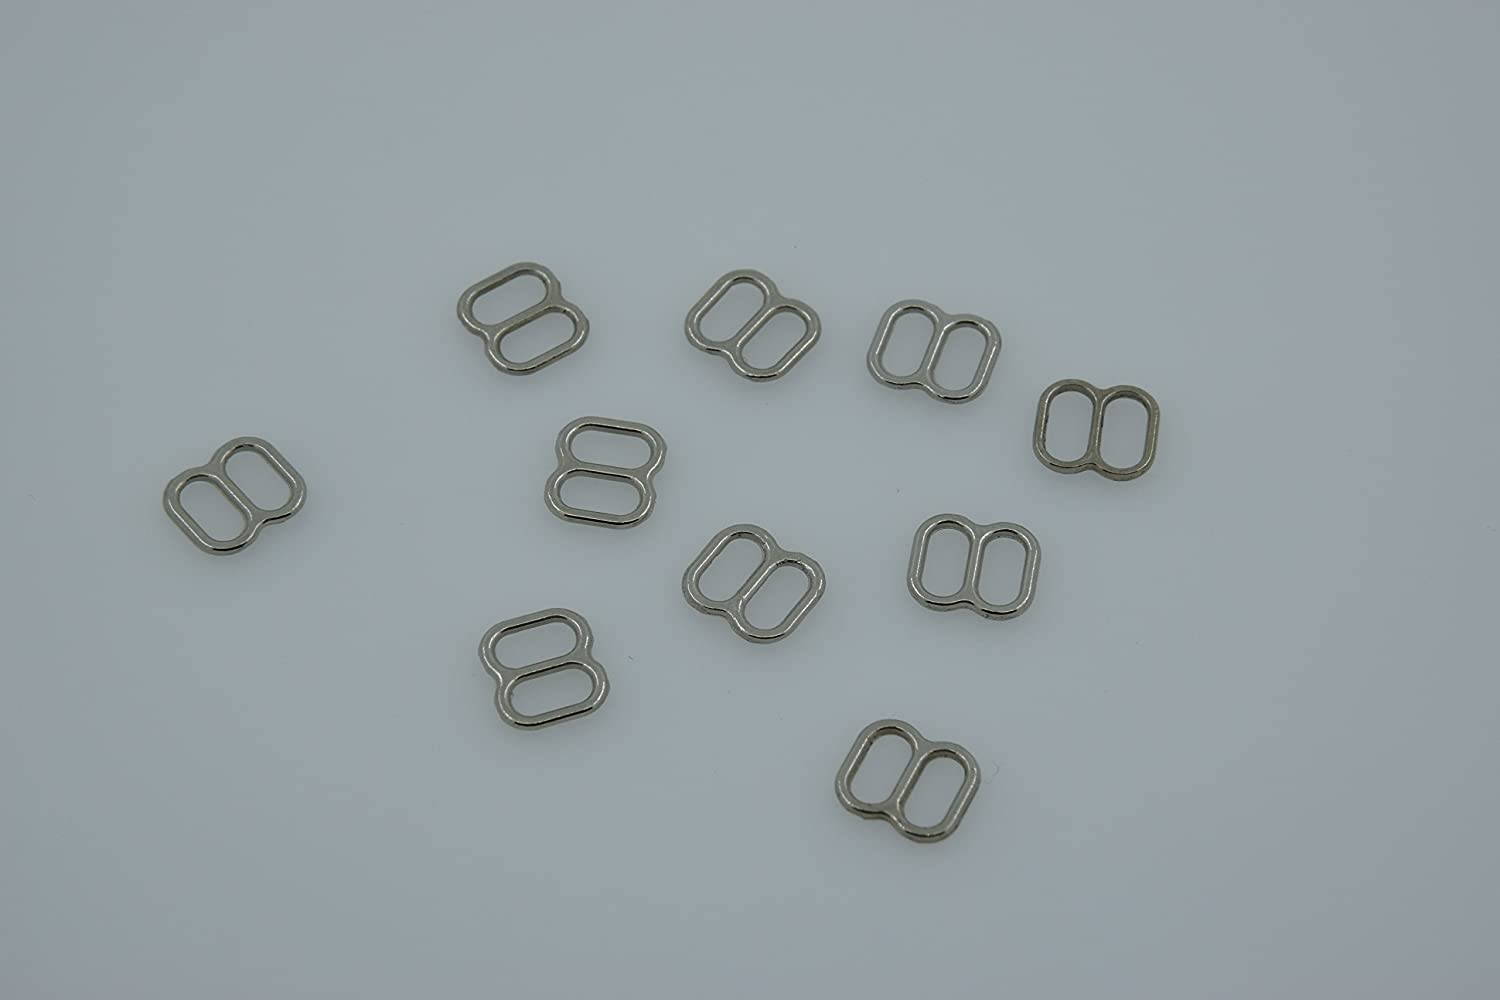 Buckes Wholesale 100pcs//lot Silver//Gold//Rose Gold Metal Bra Strap Rings Sliders and Hooks Bra Making Materials 6mm//8mm//10mm//12mm//15mm Size: 10mm, Color: Silver